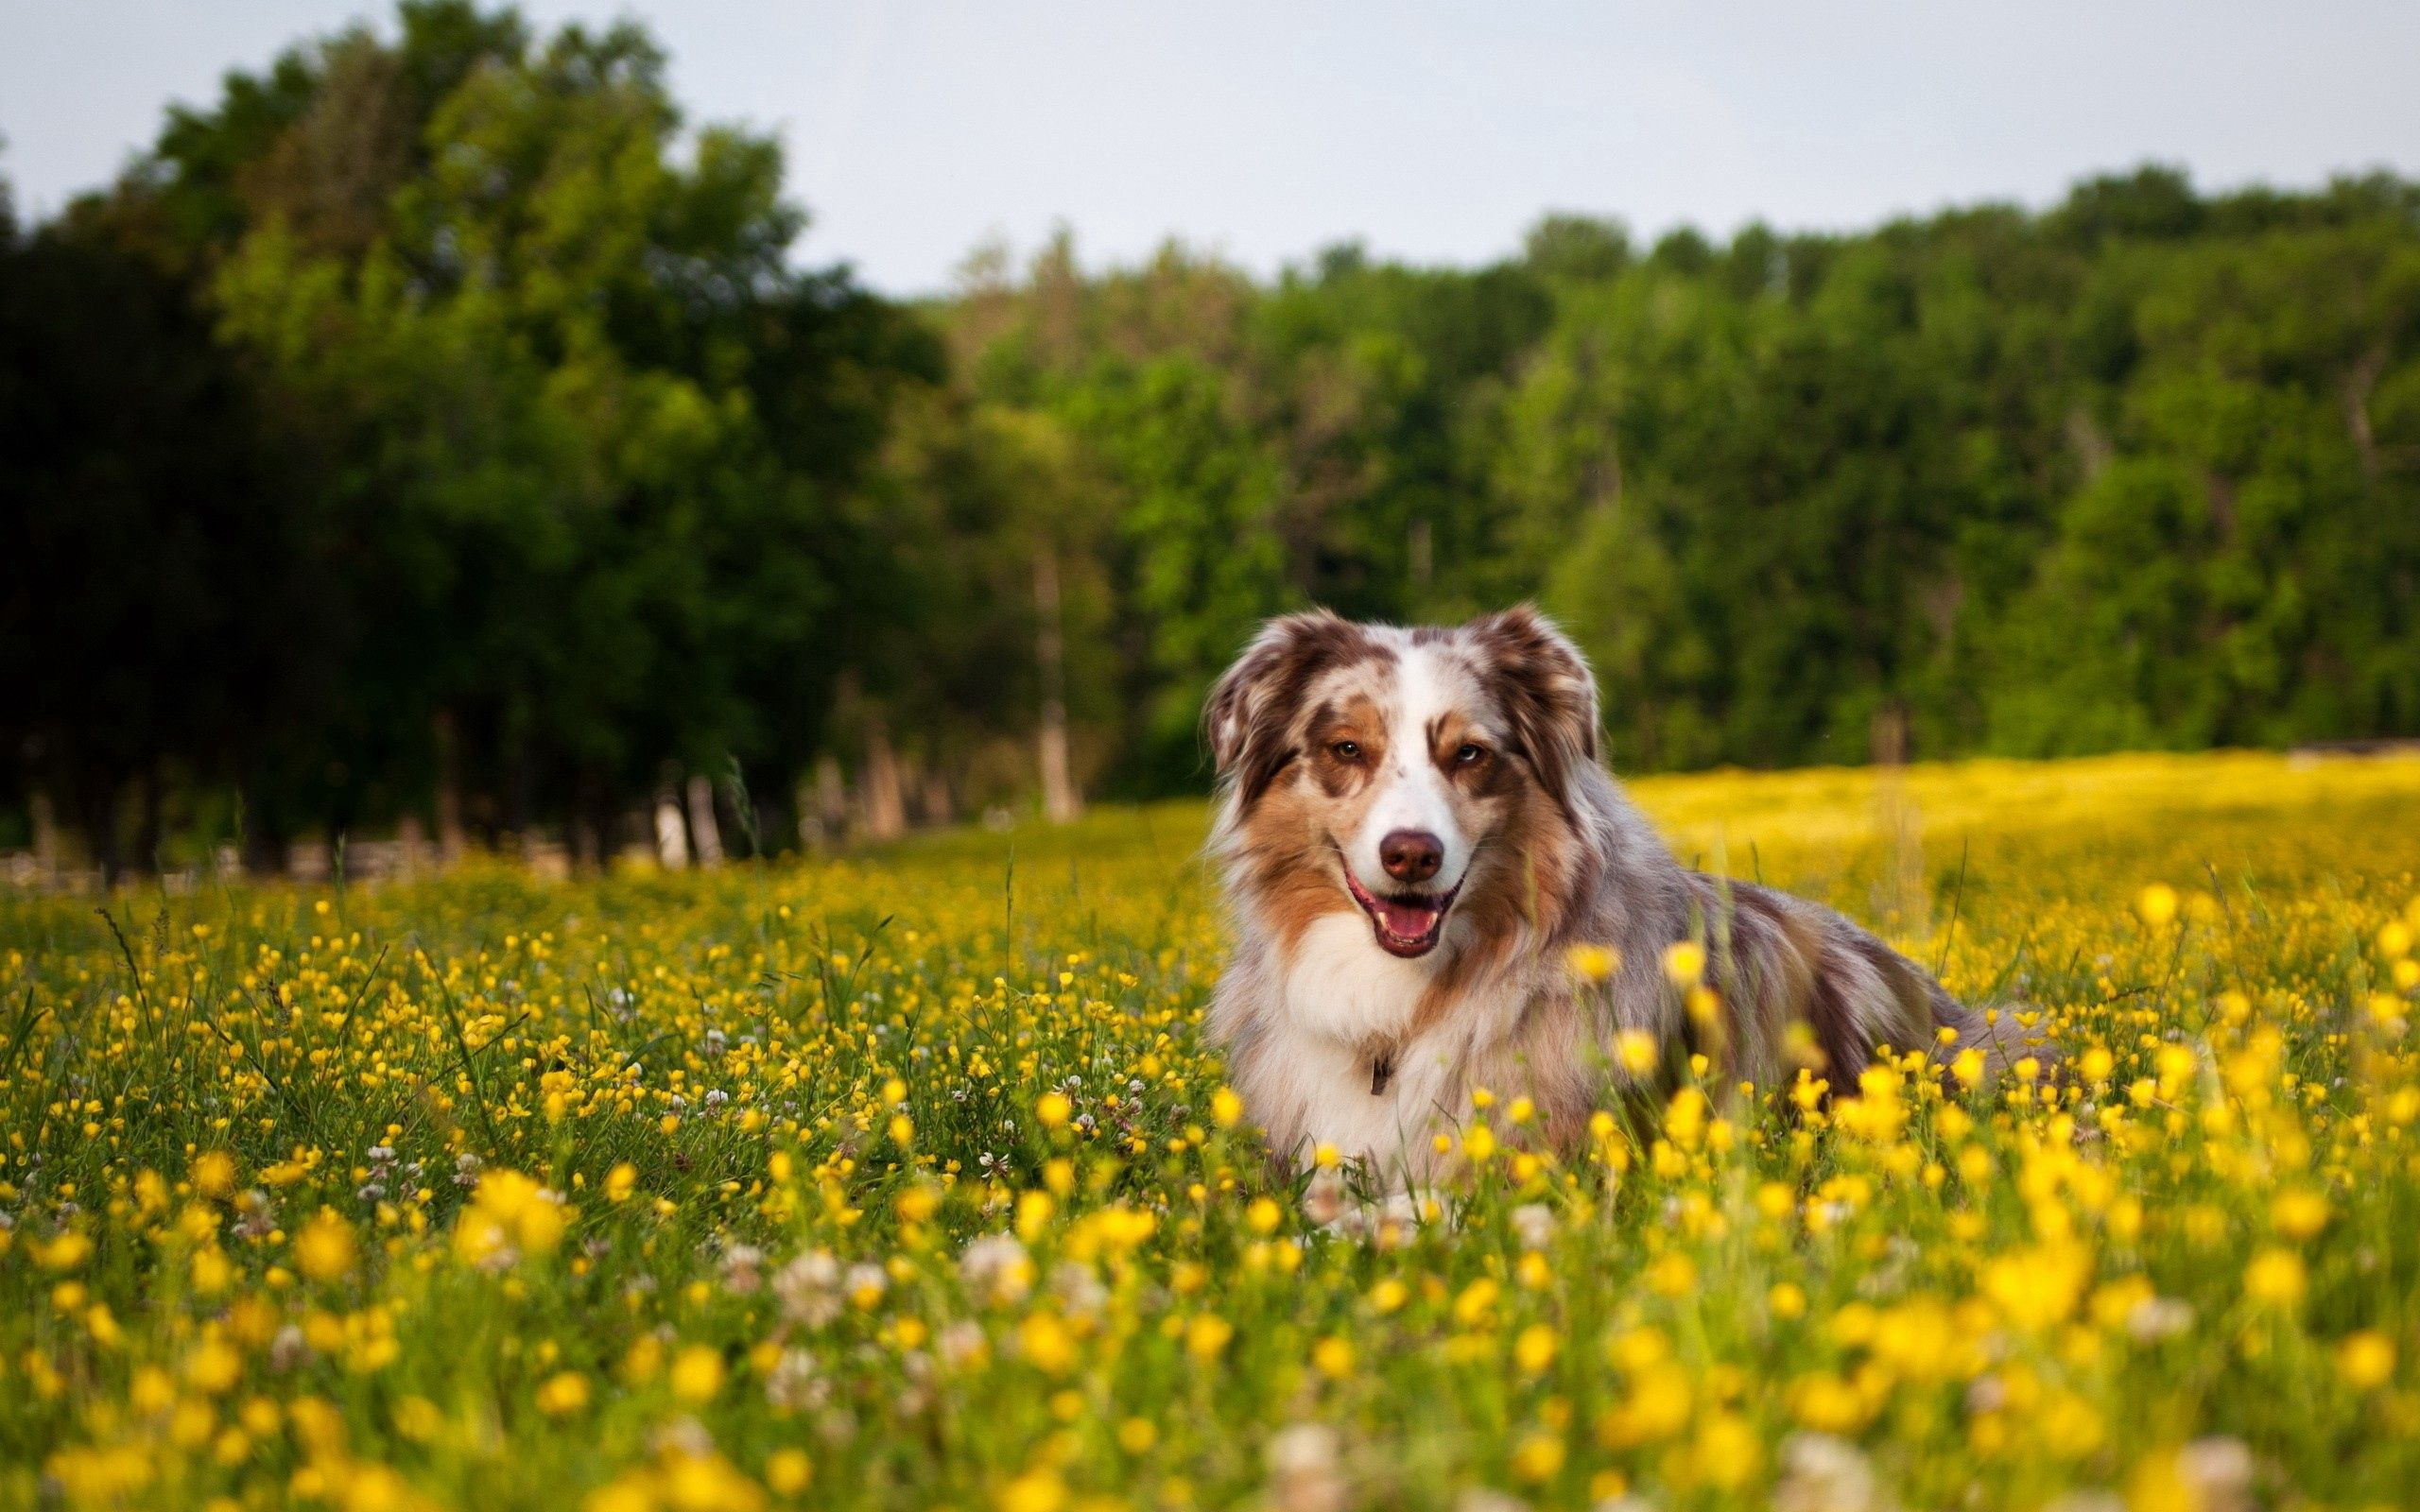 92439 download wallpaper Animals, Australian Shepherd, Dog, Sheepdog, Sheep Dog, Grass, To Lie Down, Lie, Flowers screensavers and pictures for free